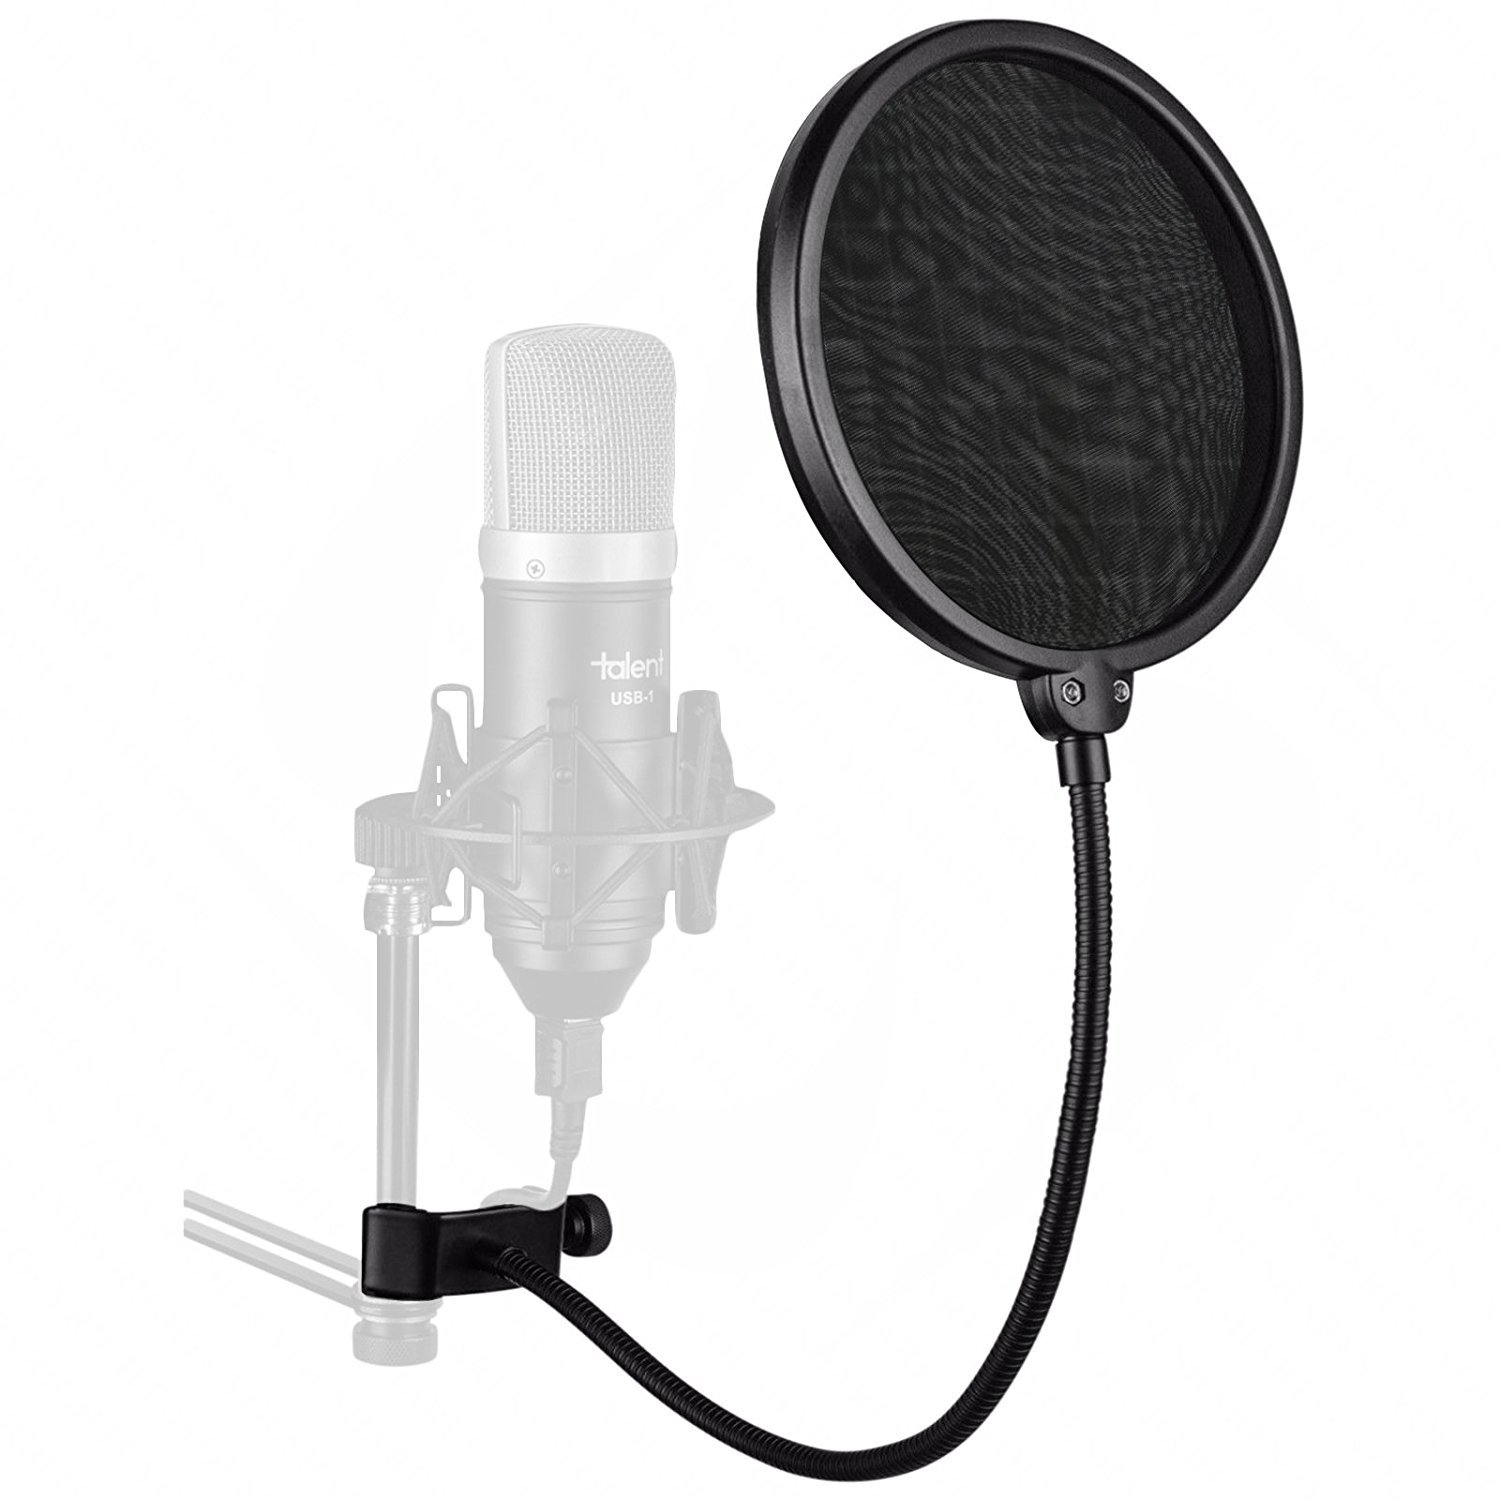 Juarez Pf-100 6-Inch Studio Microphone Pop Filter Shield Mask, Double Mesh Wind Screen With 360° Flexible Gooseneck And Quick Mount Or Release Clamp product image